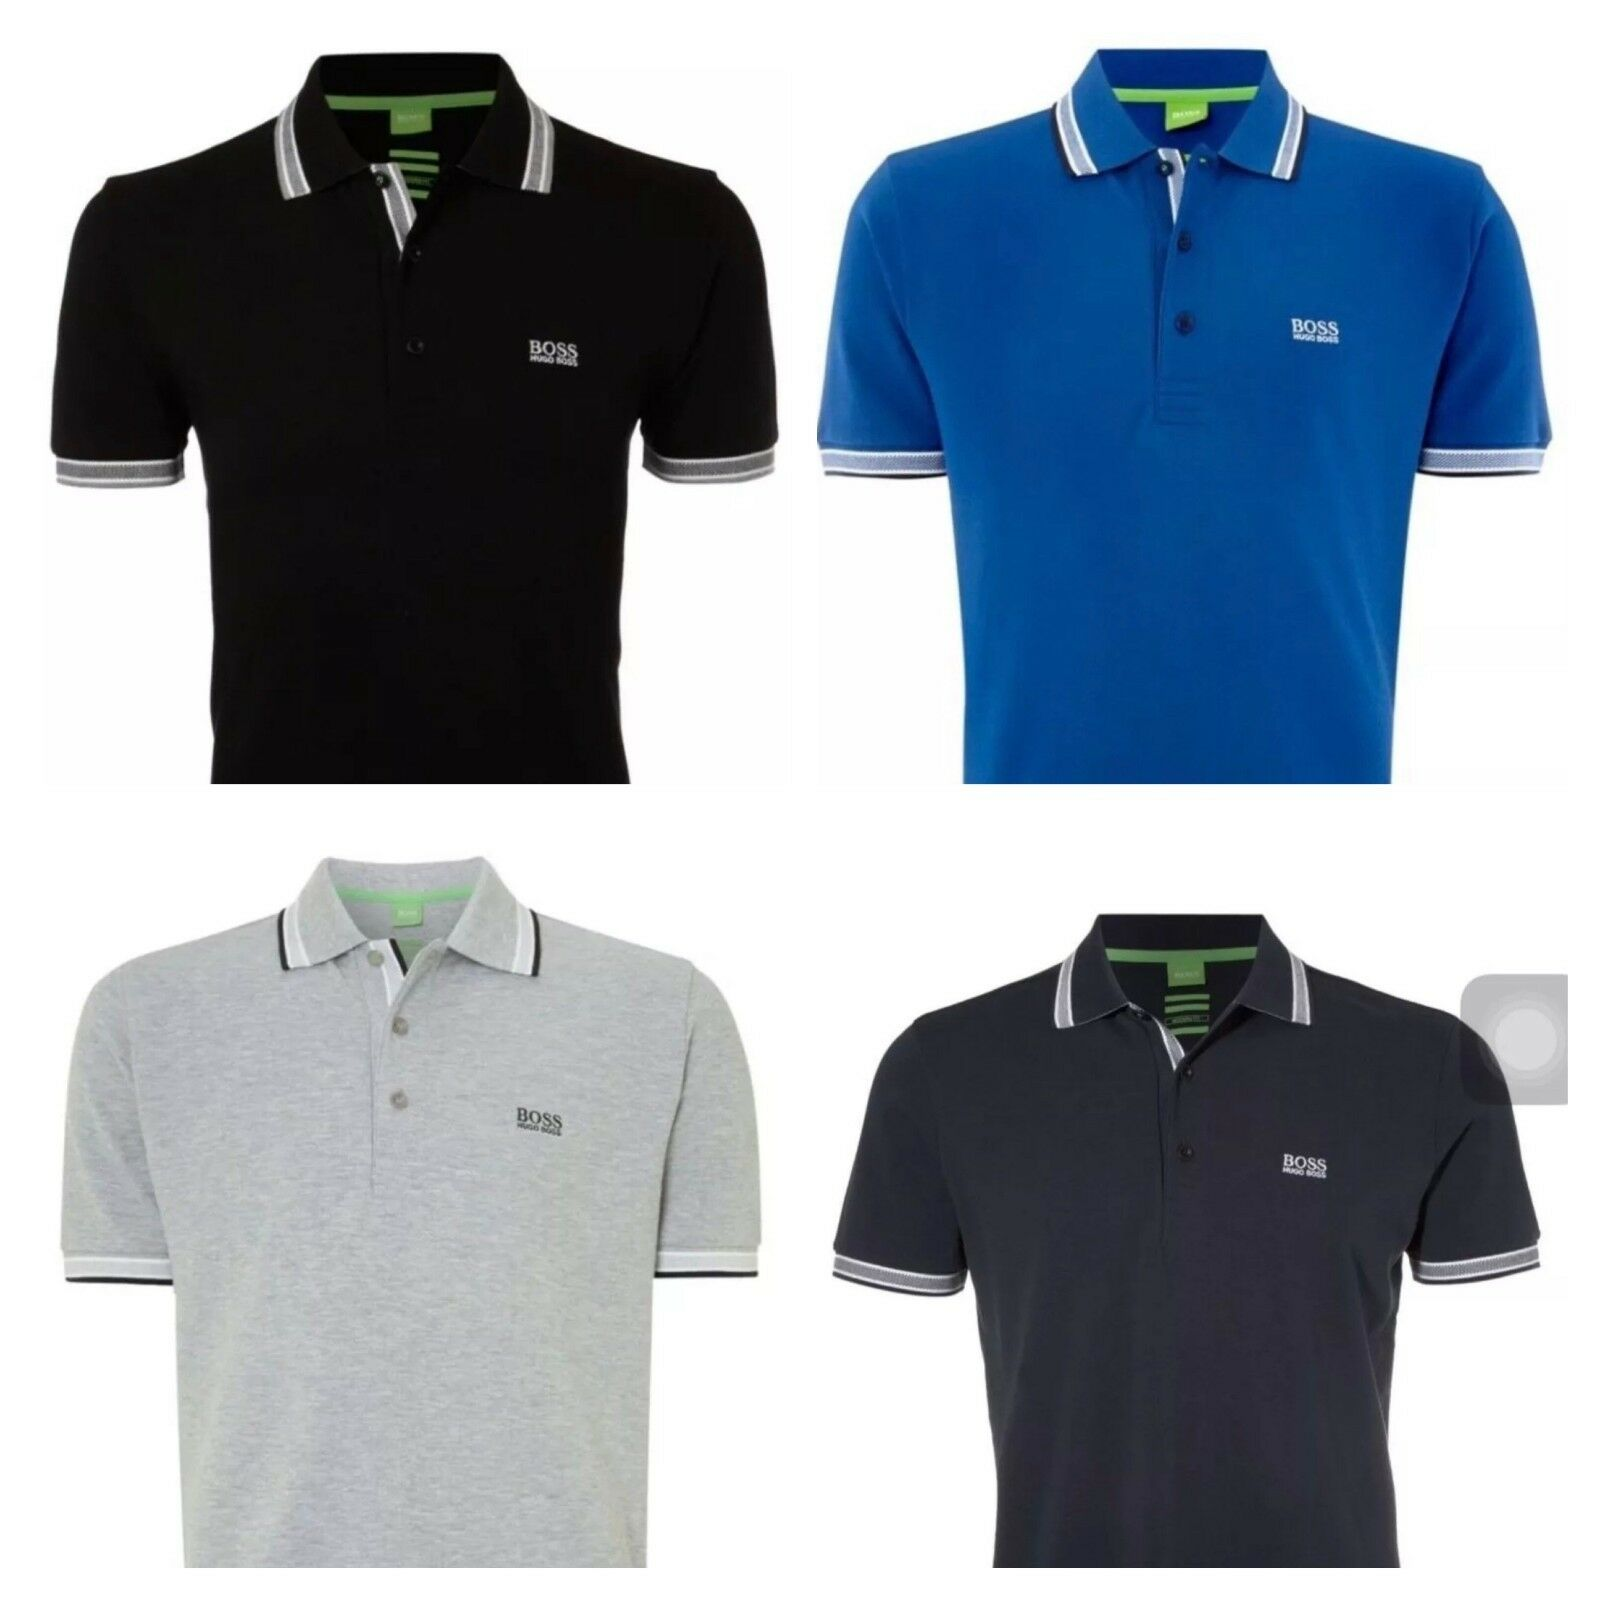 Mens hugo boss short sleeve polo t shirts eur 16 77 for Hugo boss polo shirts xxl